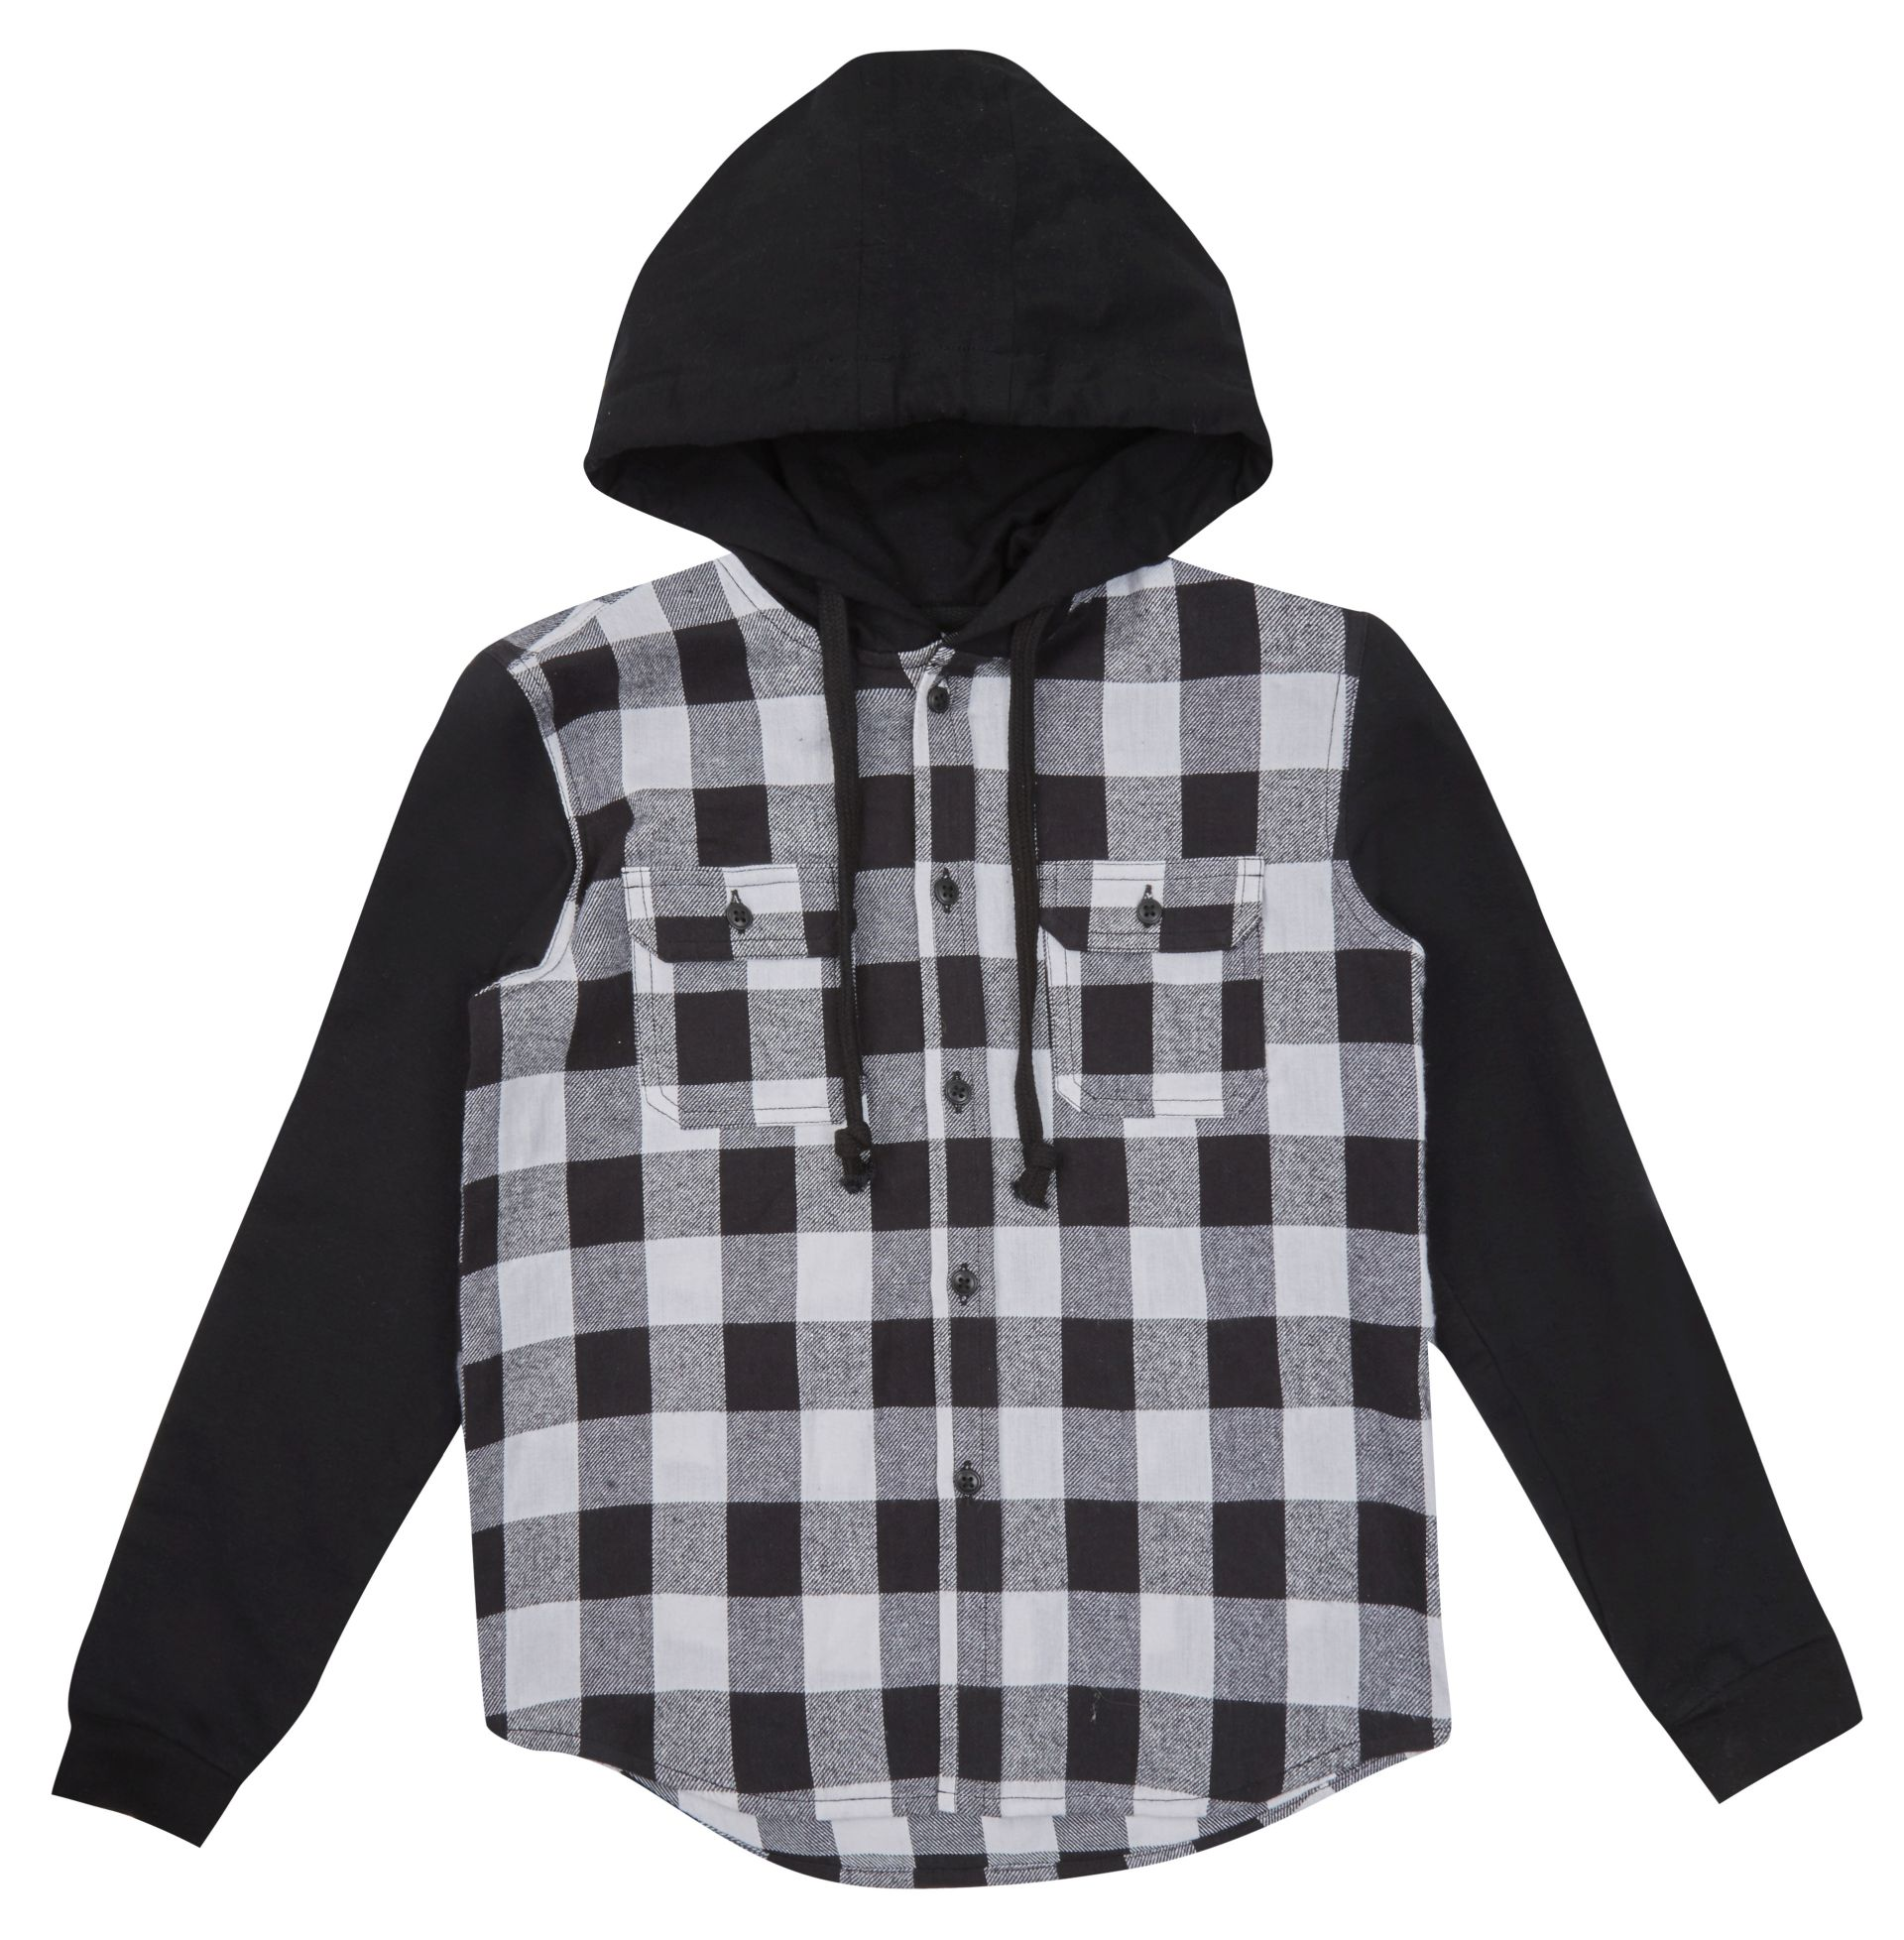 George Mock Layer Hooded Check Shirt, from Asda